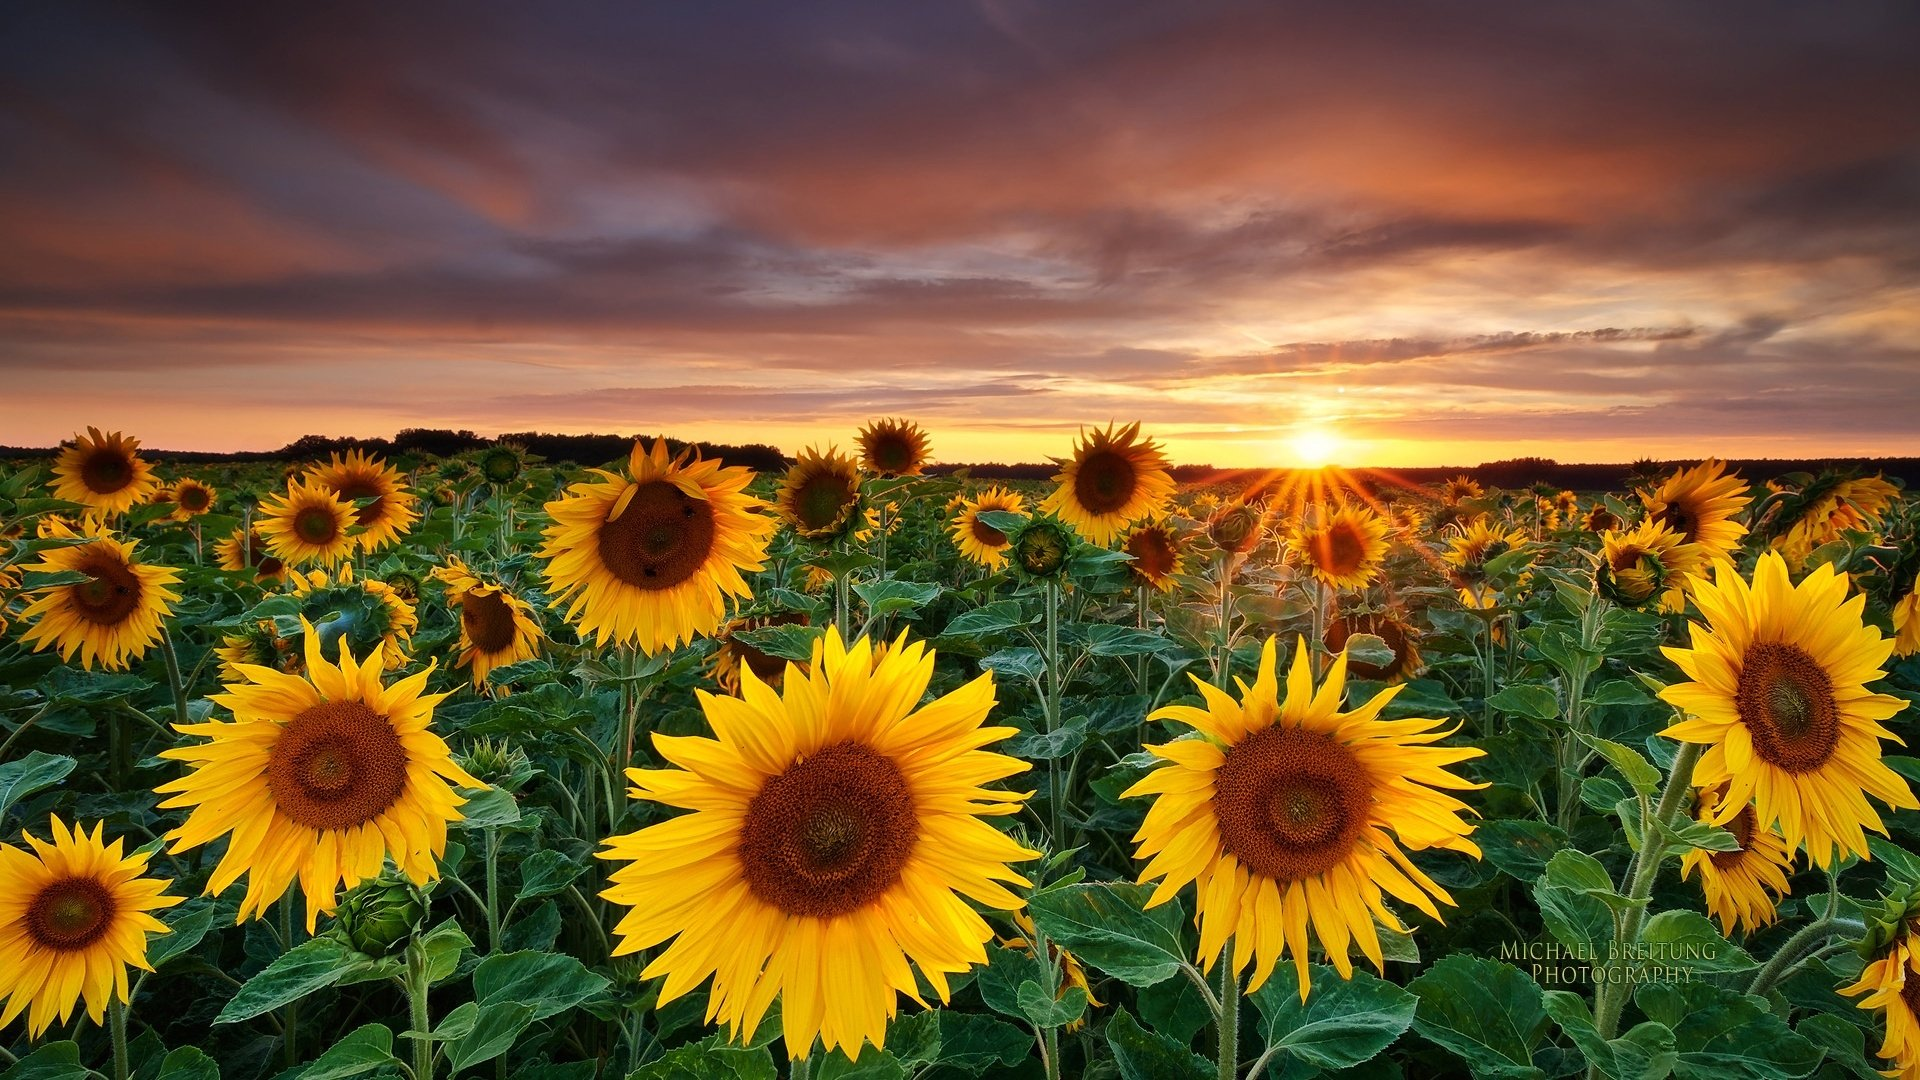 446 sunflower hd wallpapers | background images - wallpaper abyss